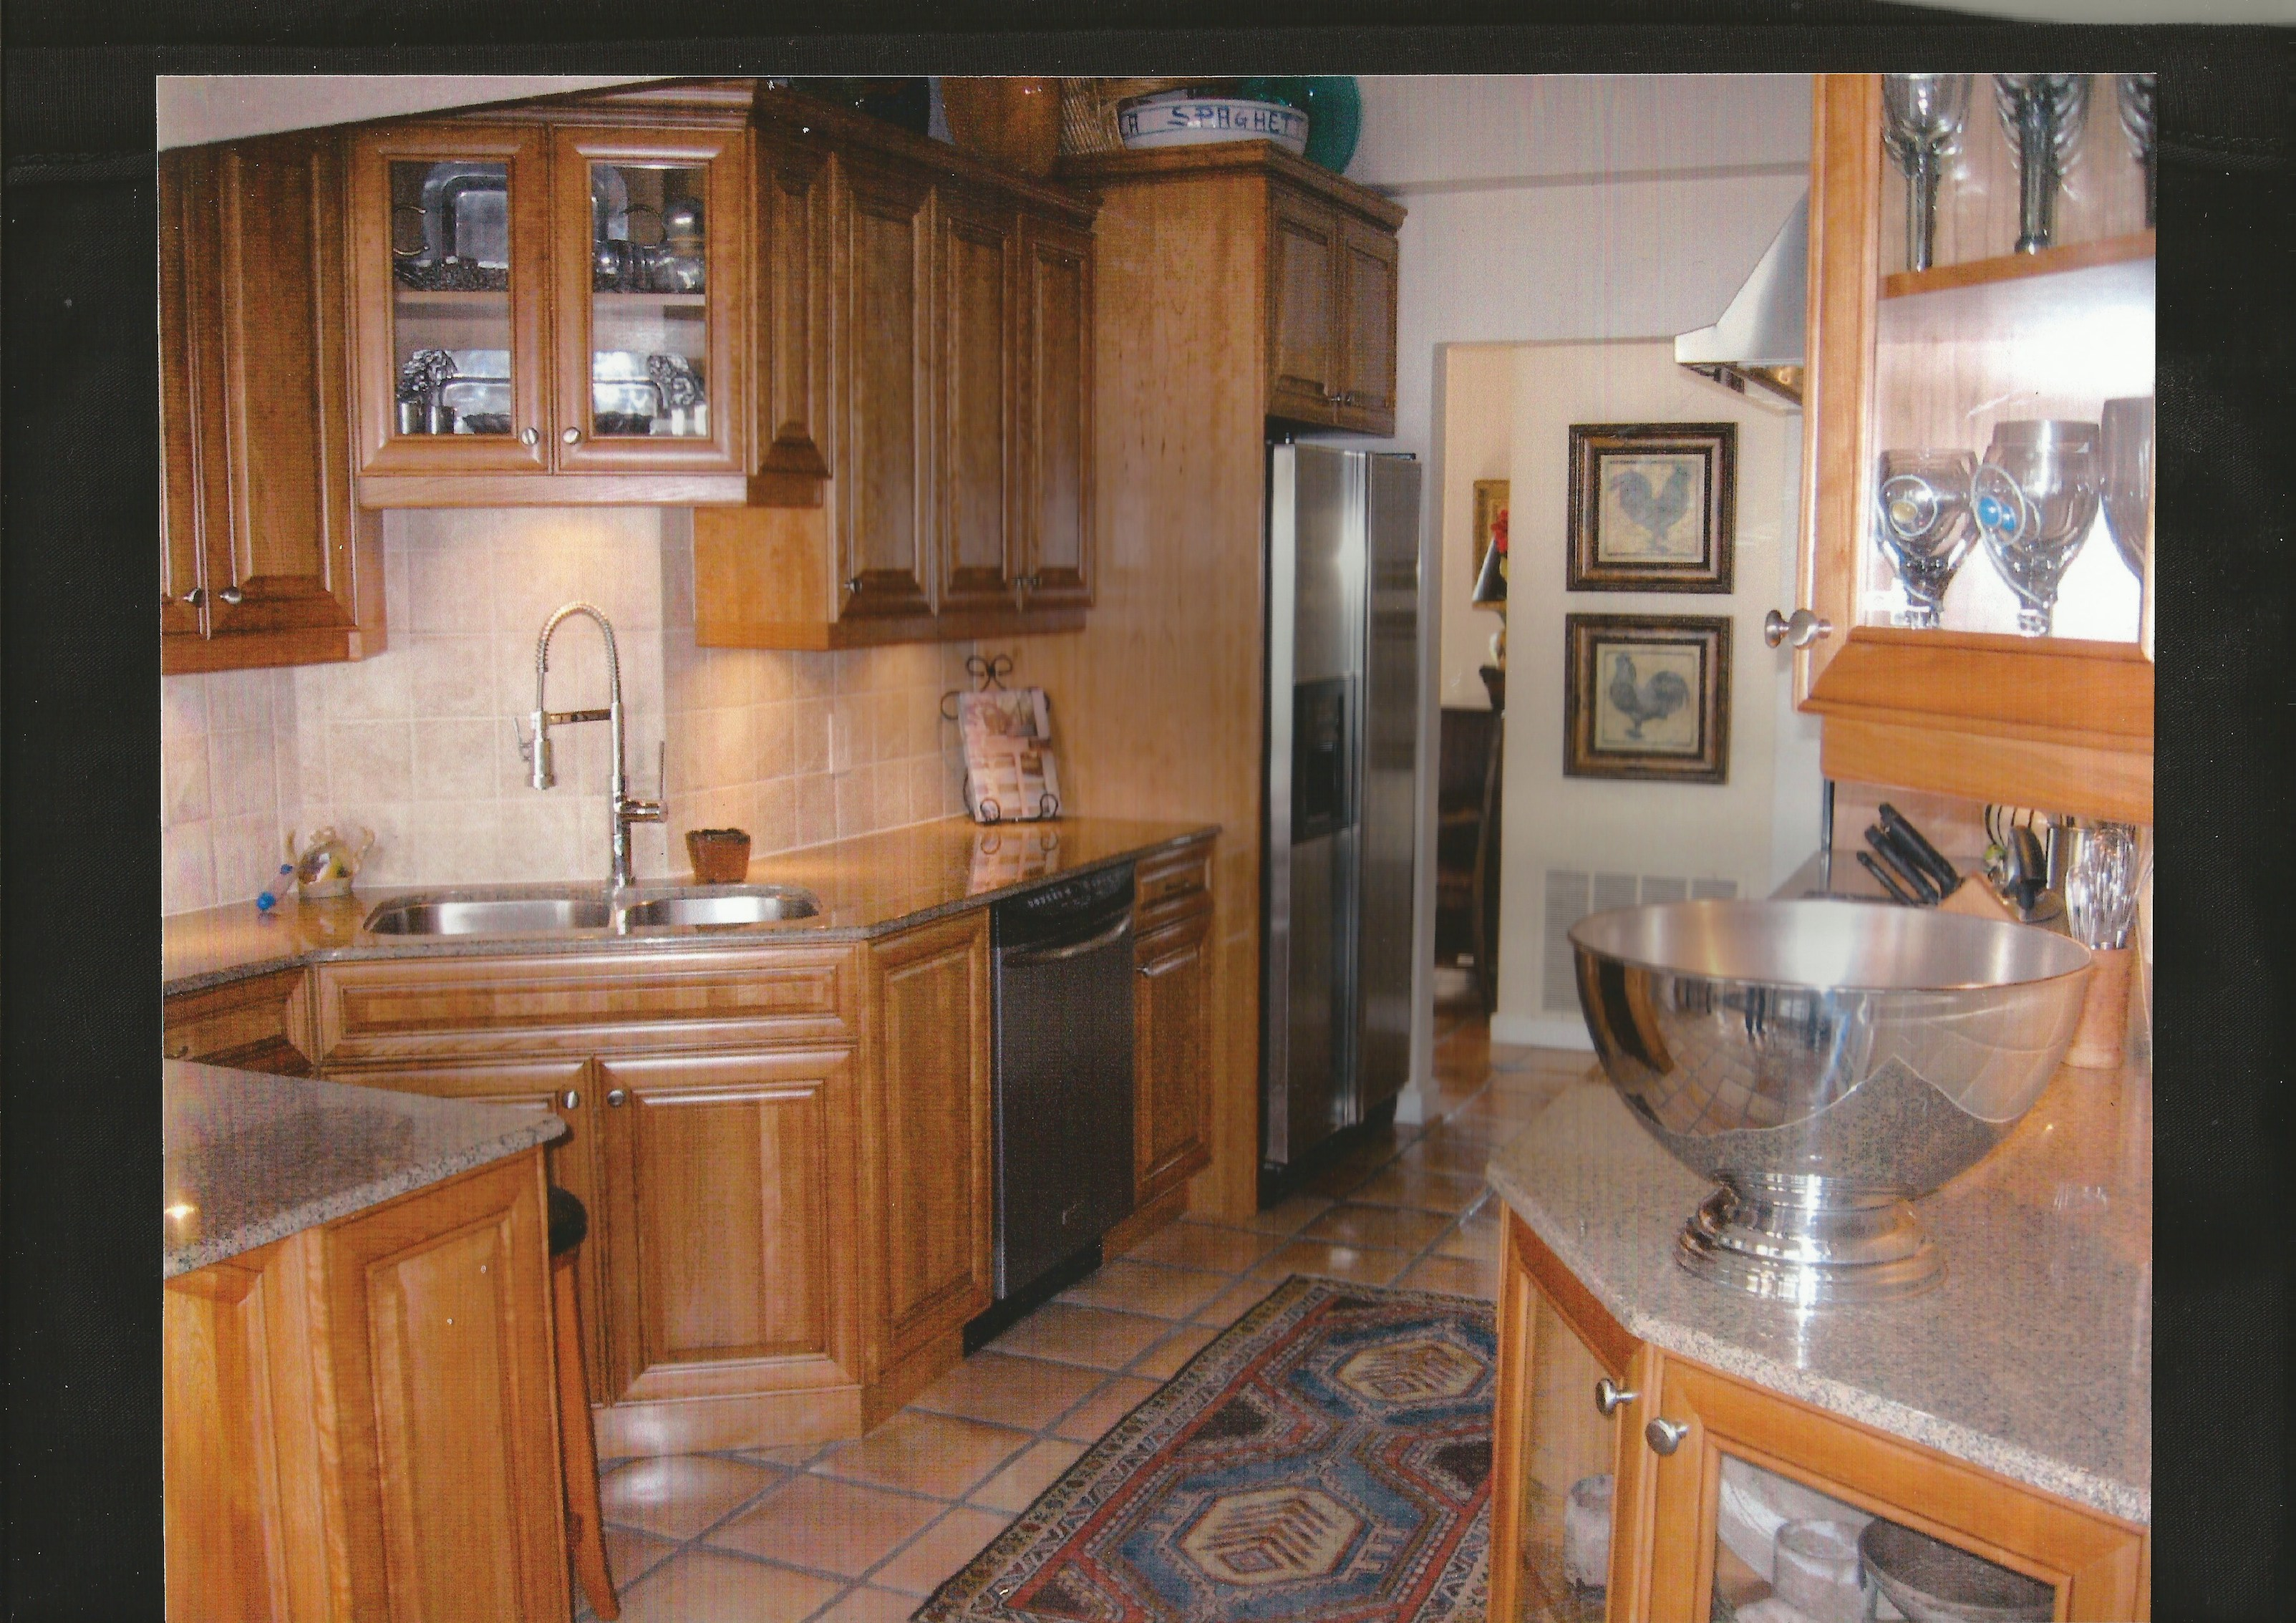 thesolidwoodcabinet kitchen remodeling tampa KITCHEN REMODELING TAMPA BAY AREA